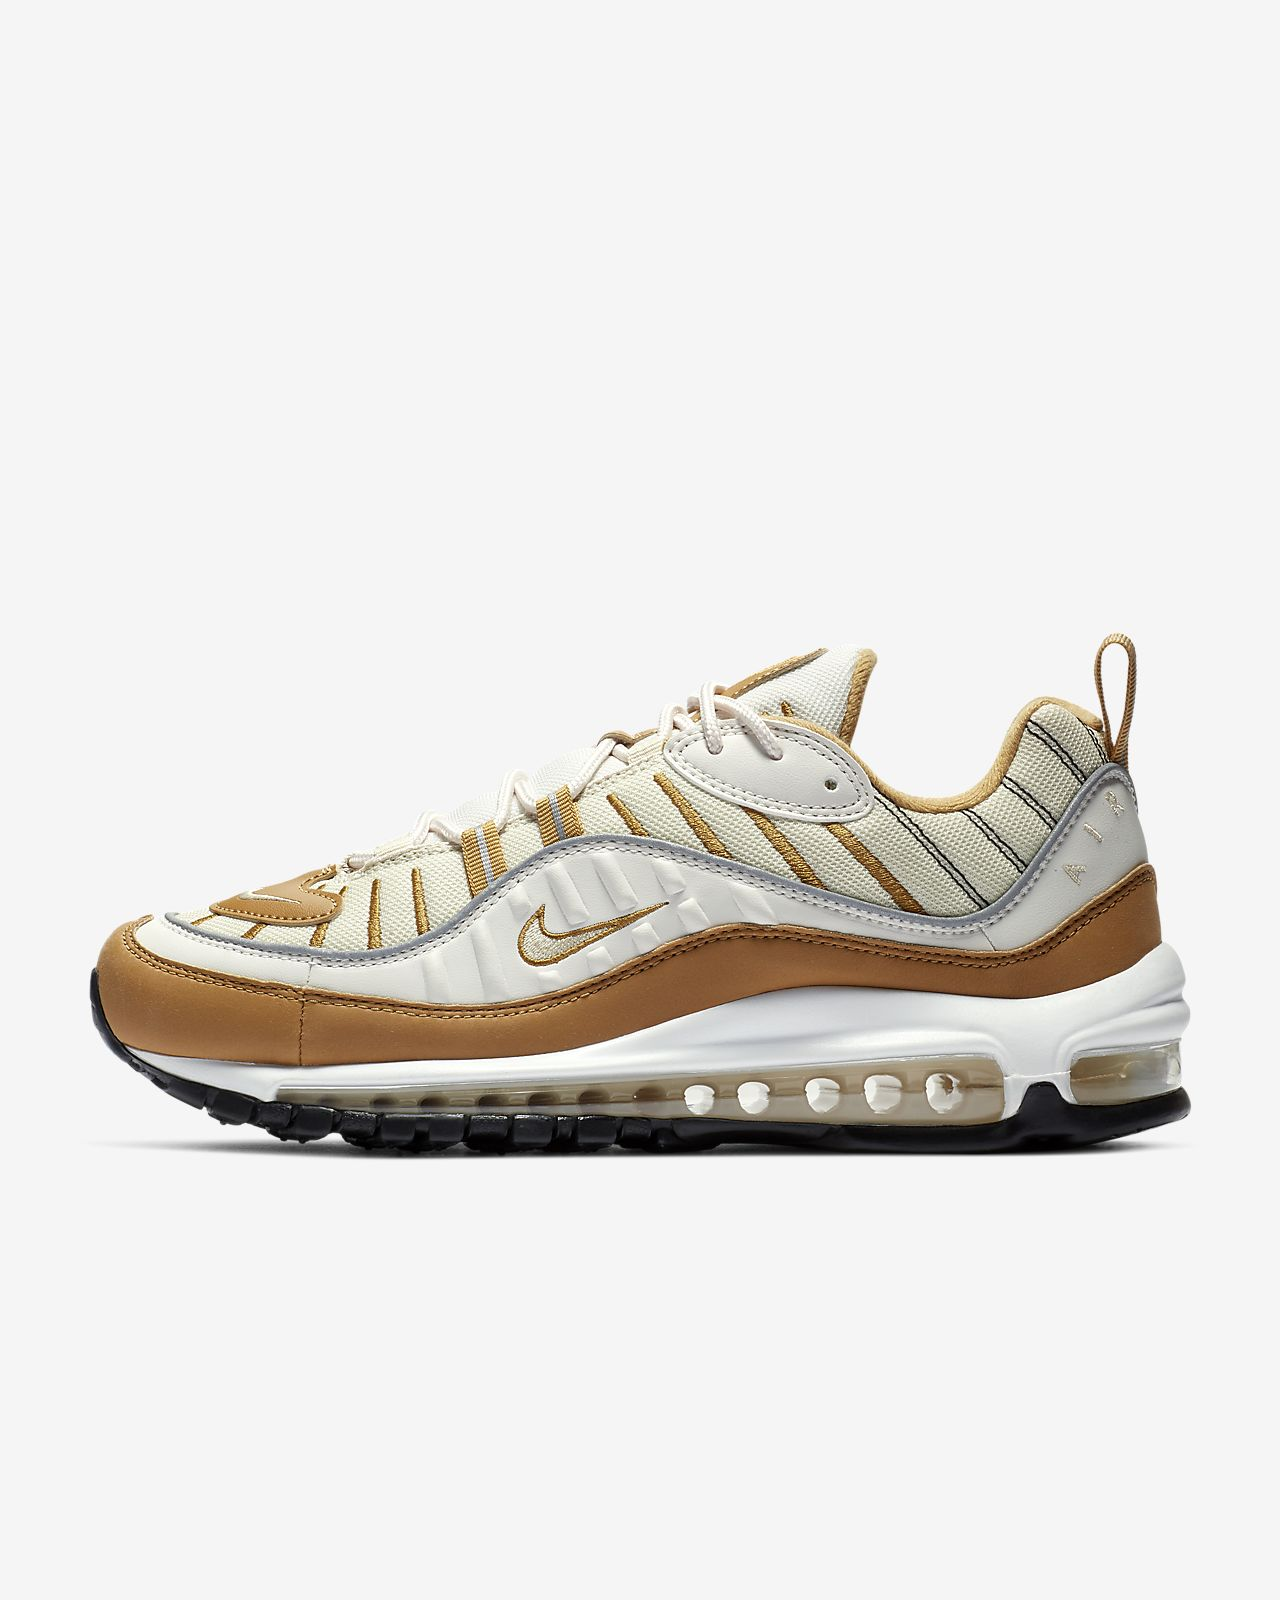 half off 80d5d edb8e ... Nike Air Max 98 Beige Women s Shoe